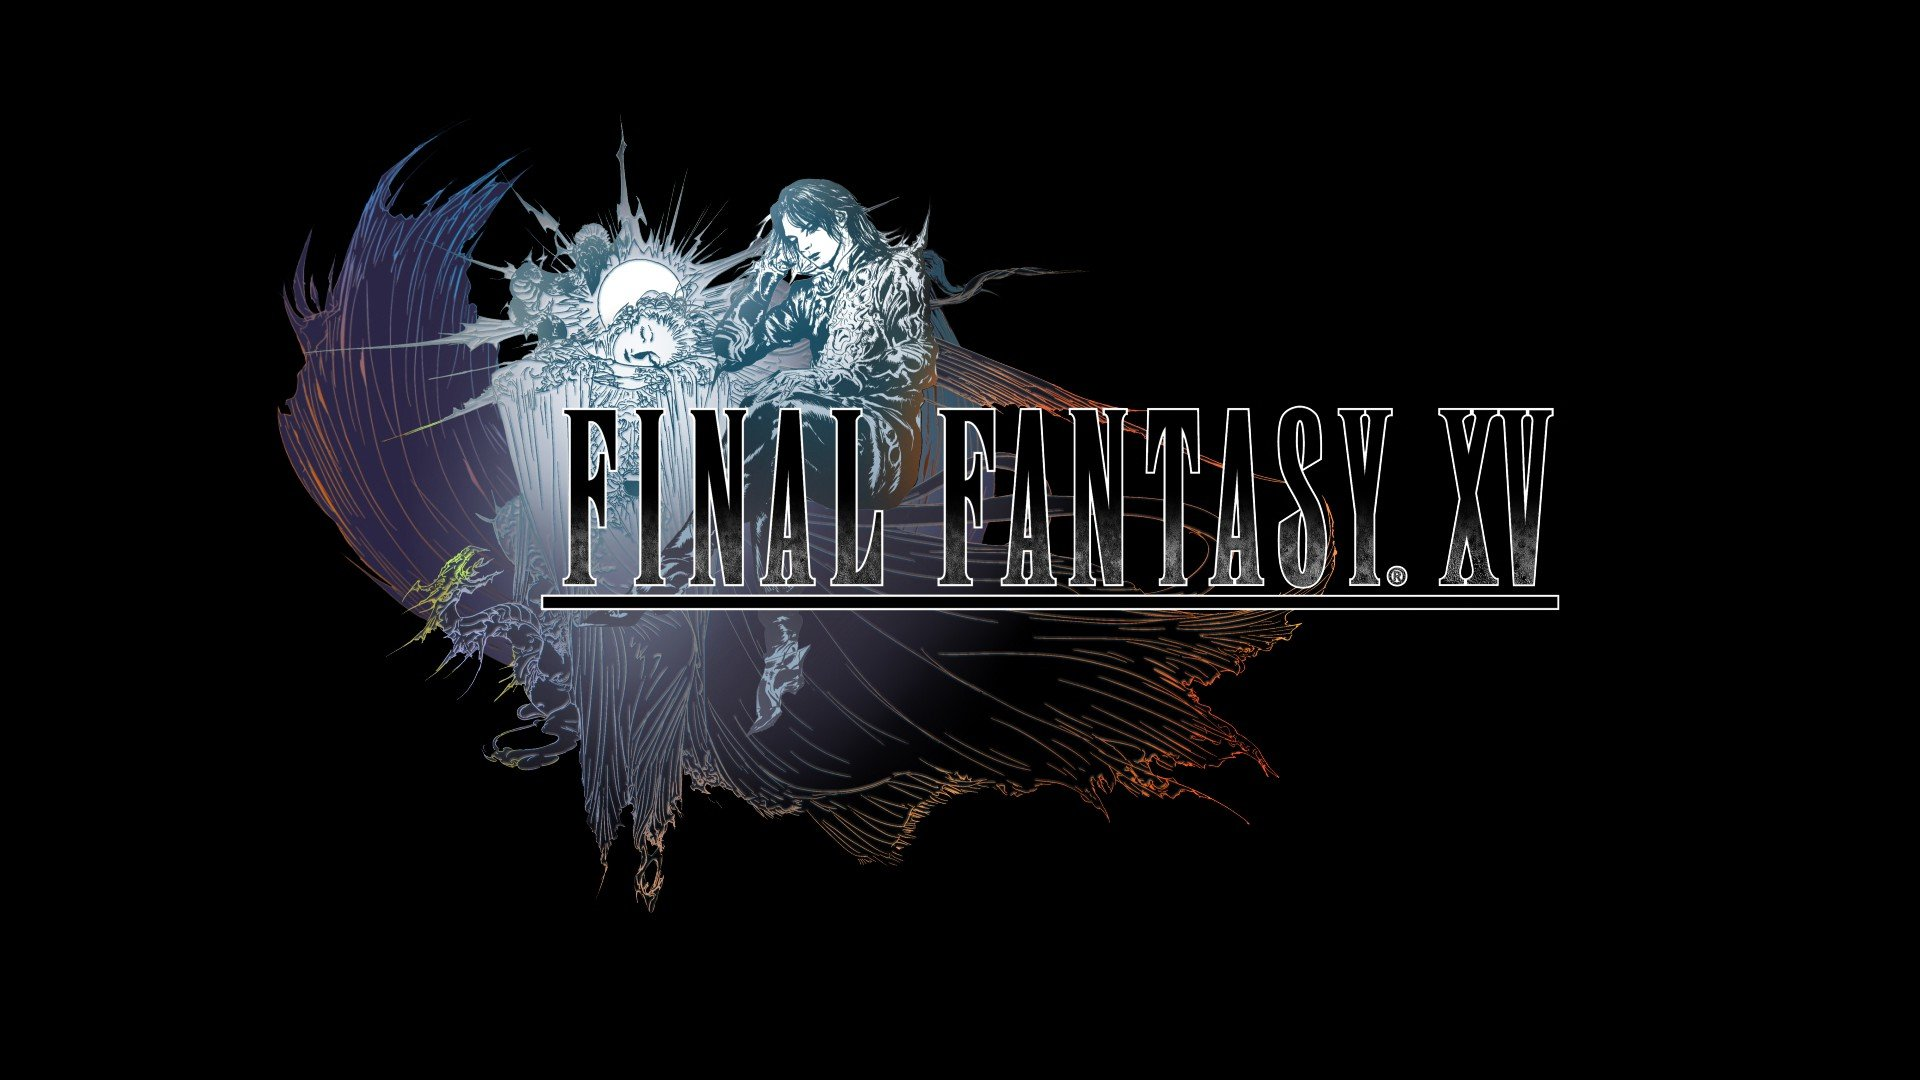 117 Final Fantasy Xv Hd Wallpapers: Final Fantasy, Final Fantasy XV HD Wallpapers / Desktop